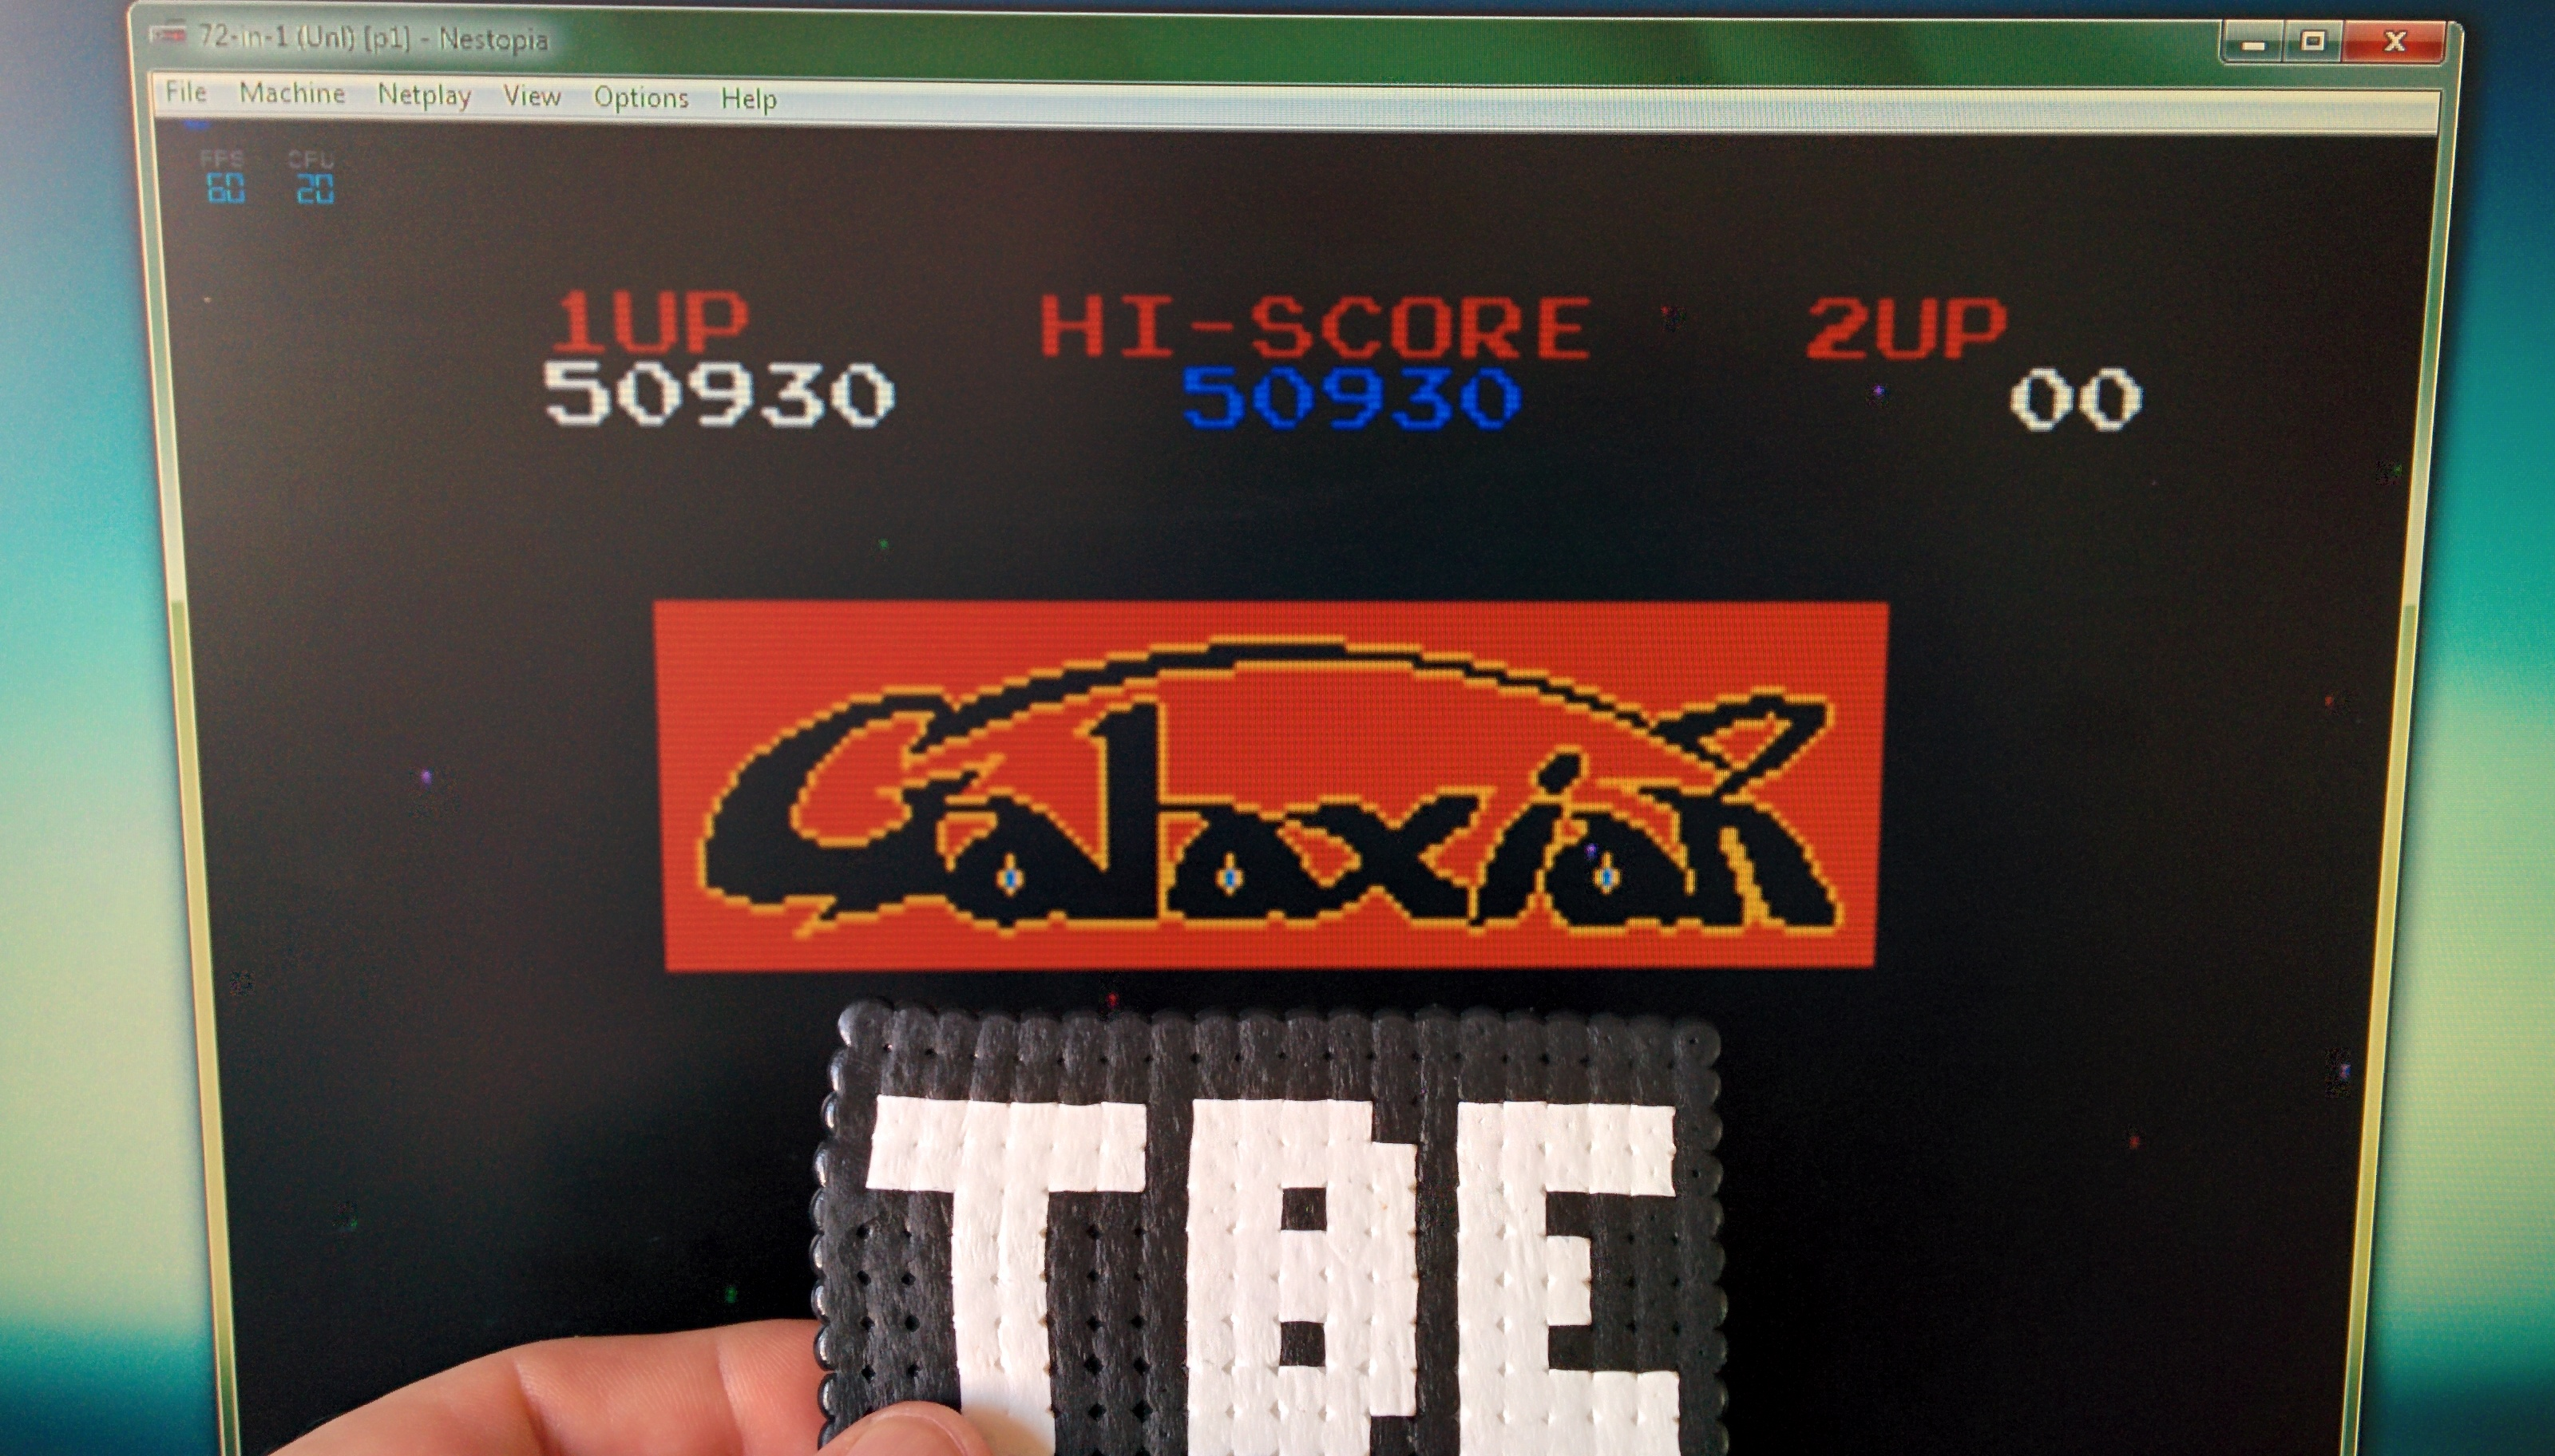 Sixx: Super Galaxian: 72-in-1 (Unl) [p1] (NES/Famicom Emulated) 50,930 points on 2014-09-21 09:34:10